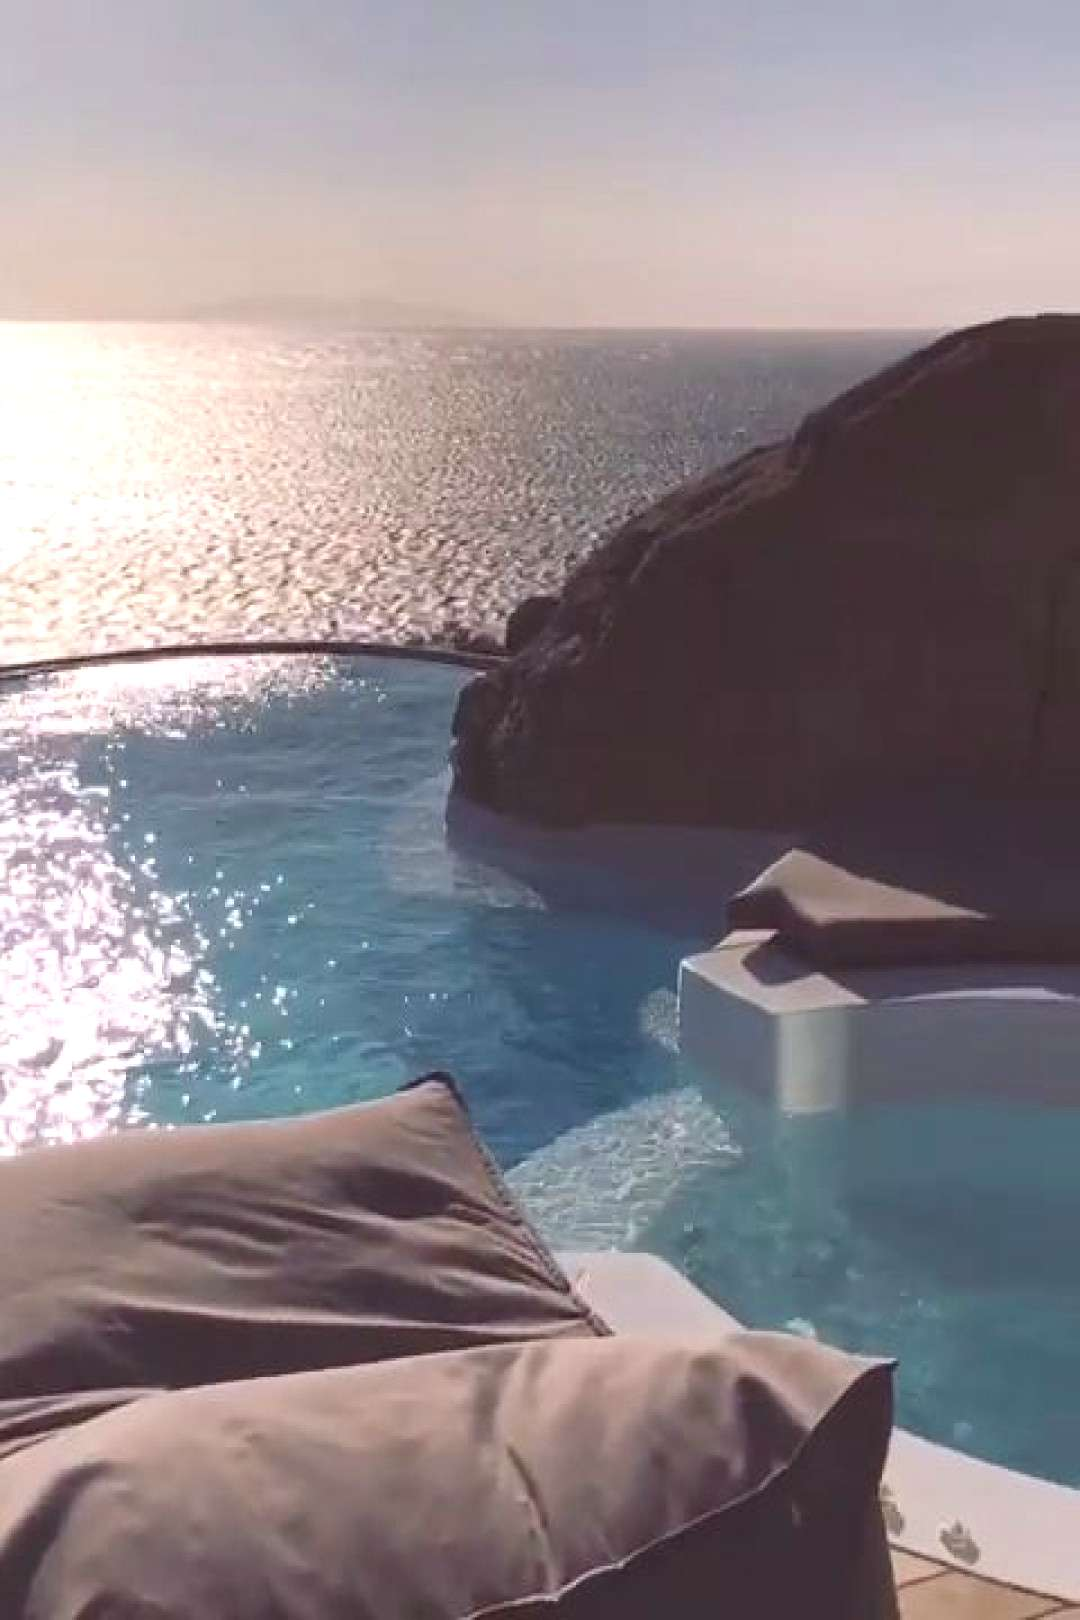 mykonos Luxury Cave Hotel in Mykonos, Greece - The Perfect Couples Getaway! Located in the Aegean S